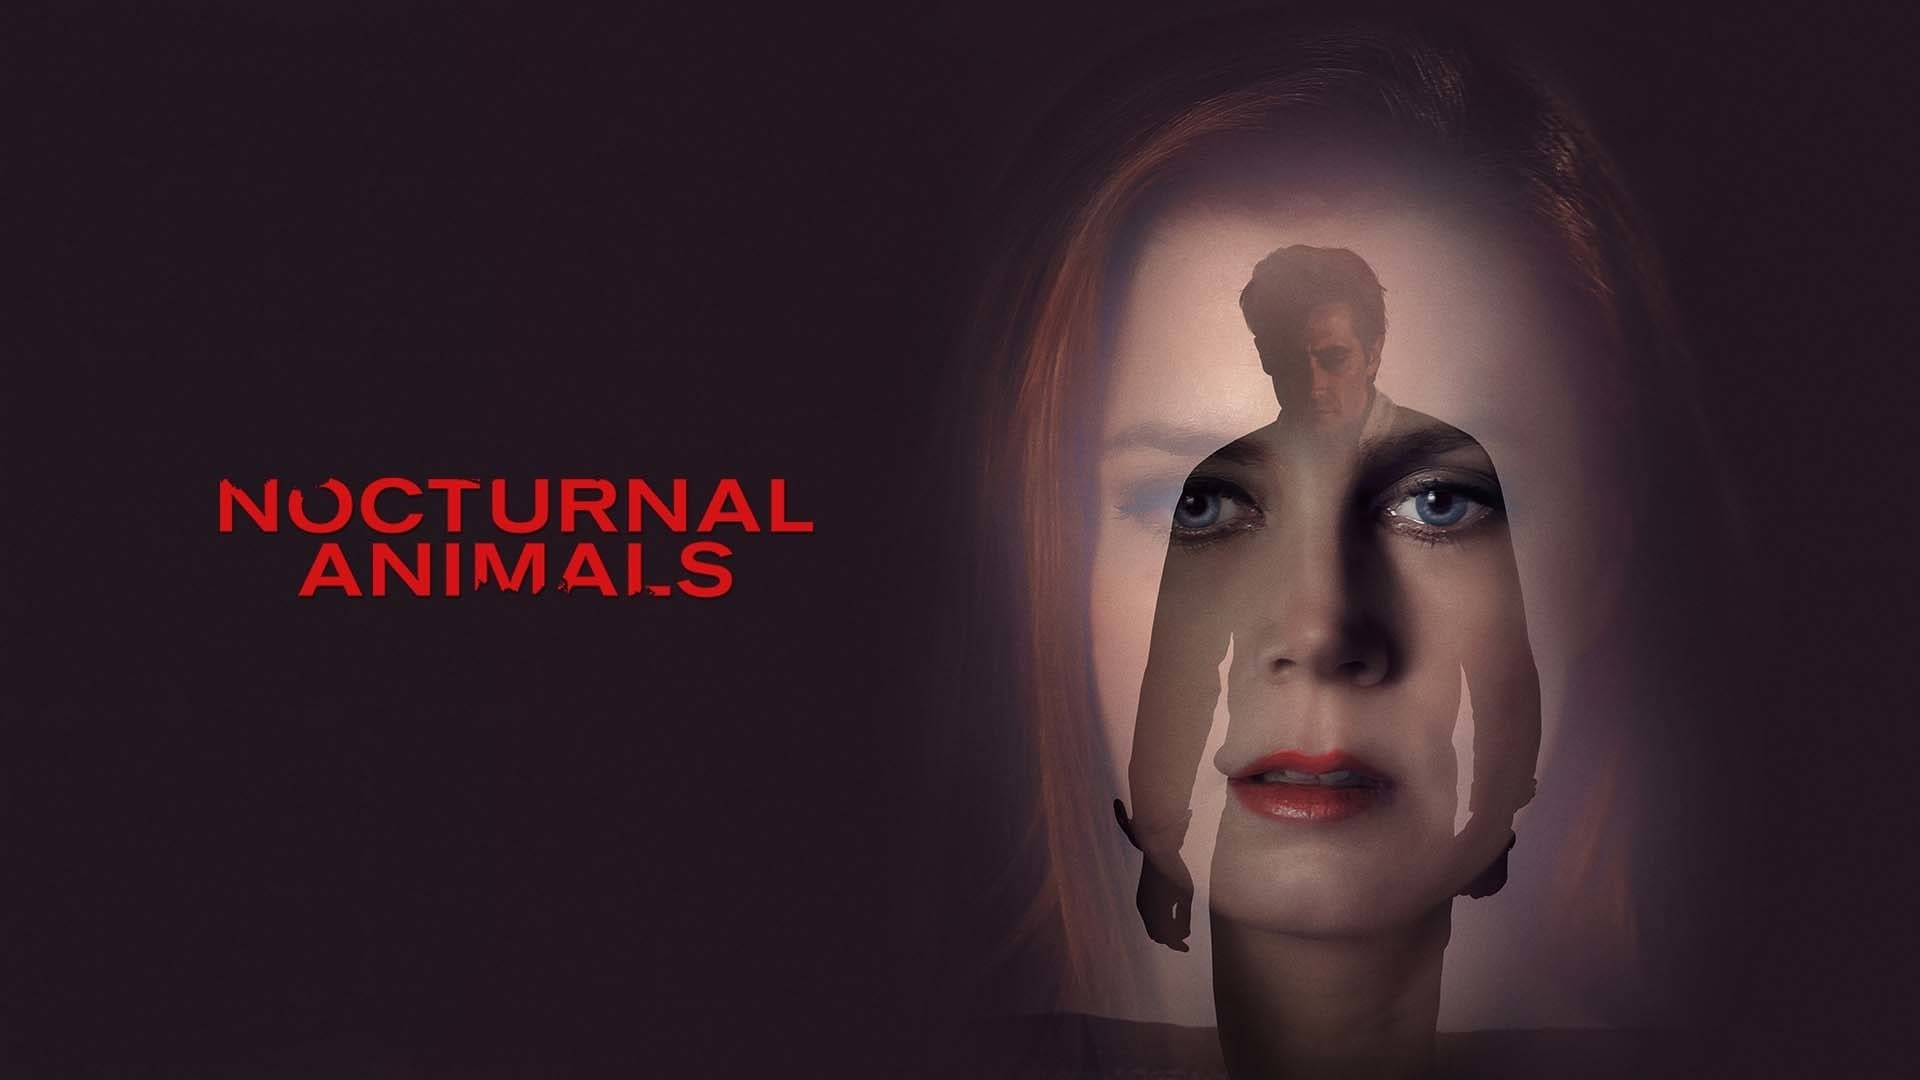 nocturnal animals stream